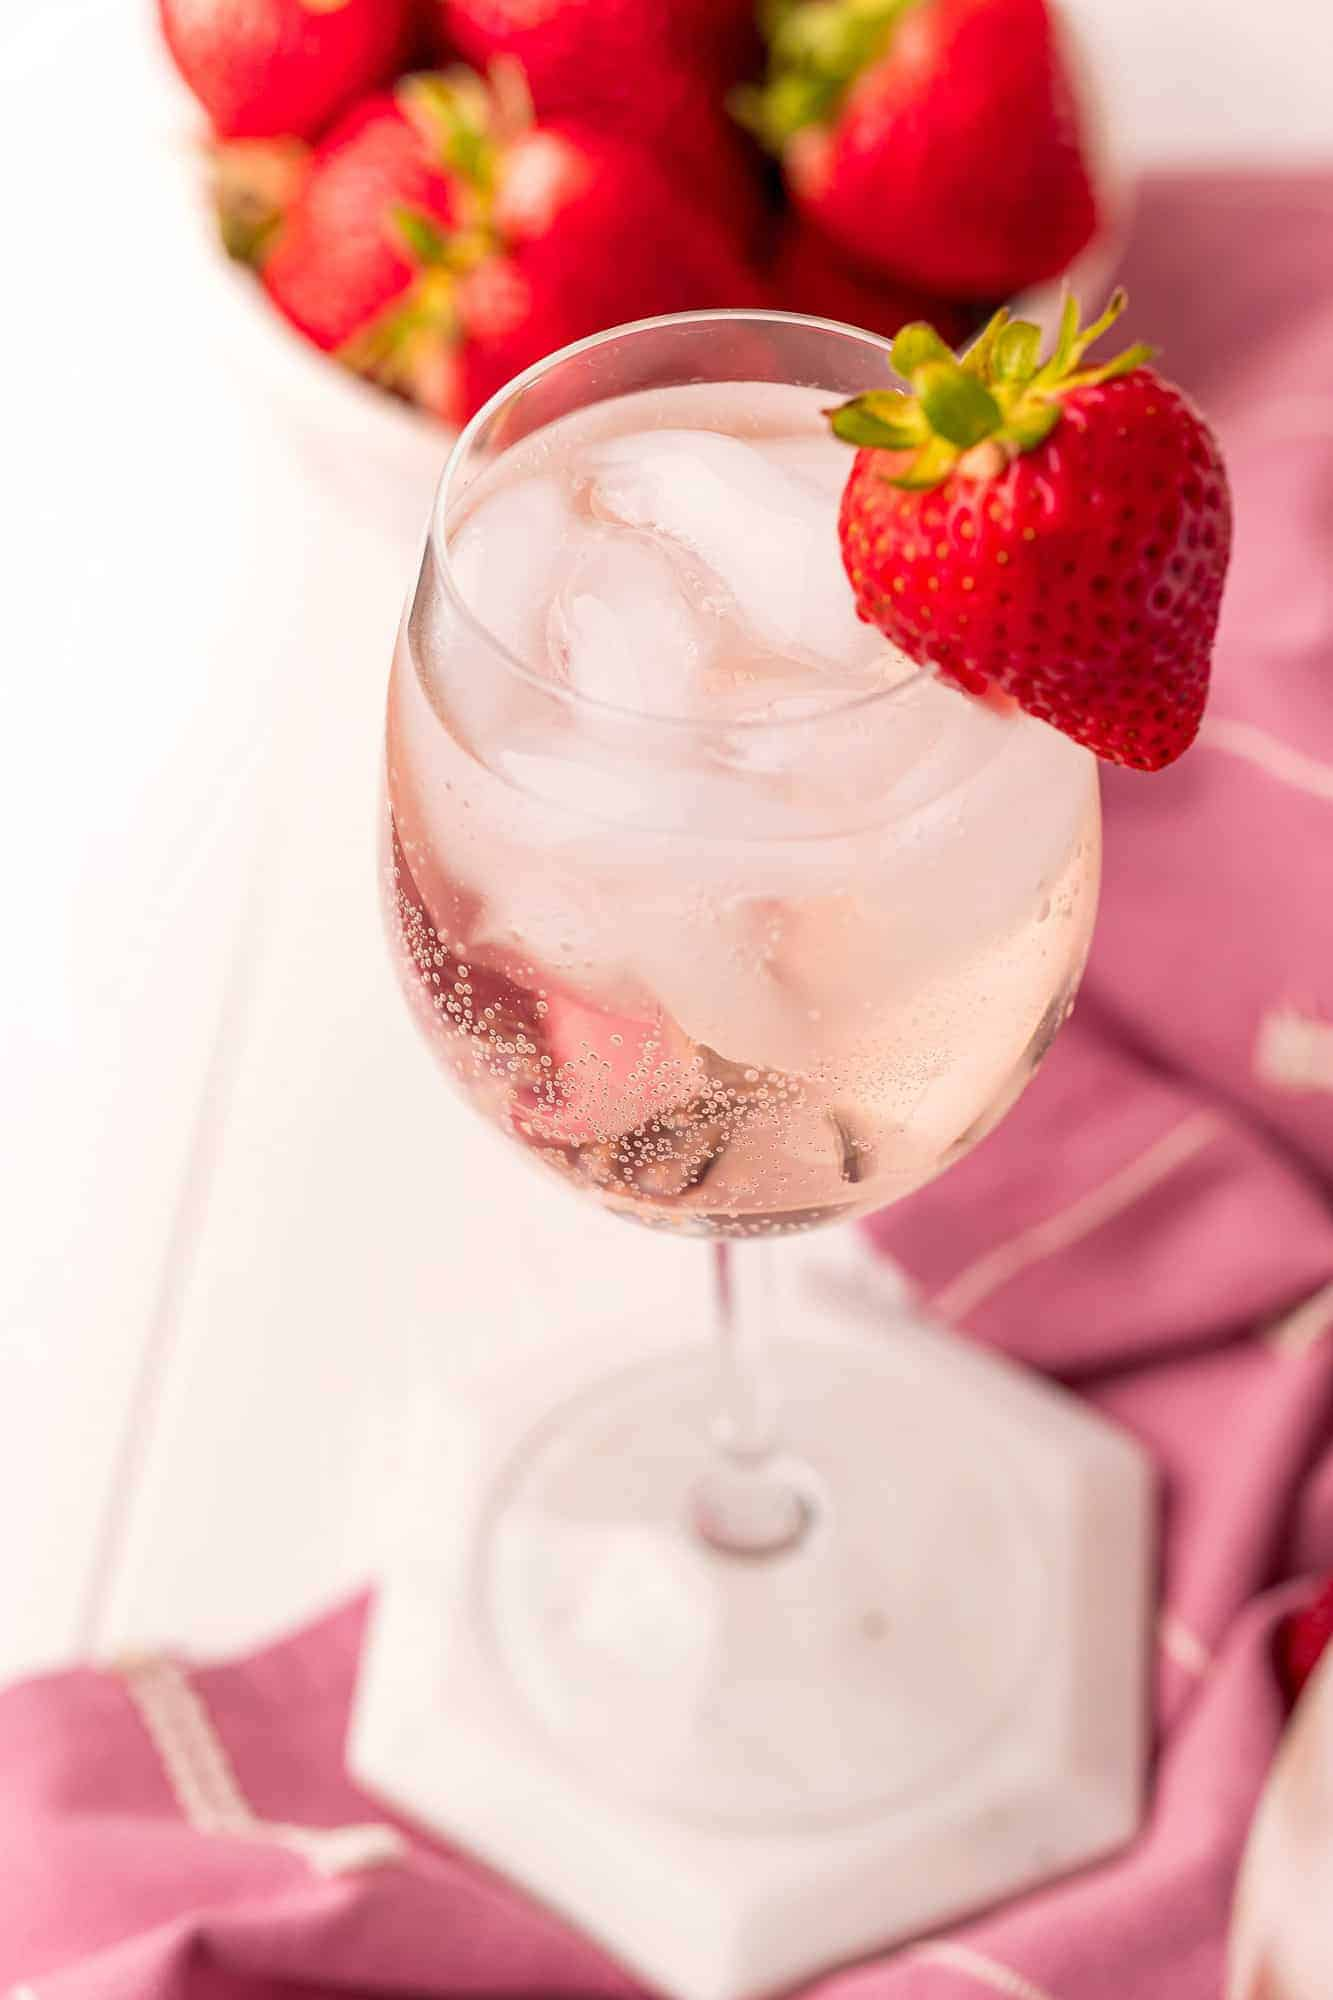 Light pink iced drink in a stemmed wine glass with a strawberry garnish.